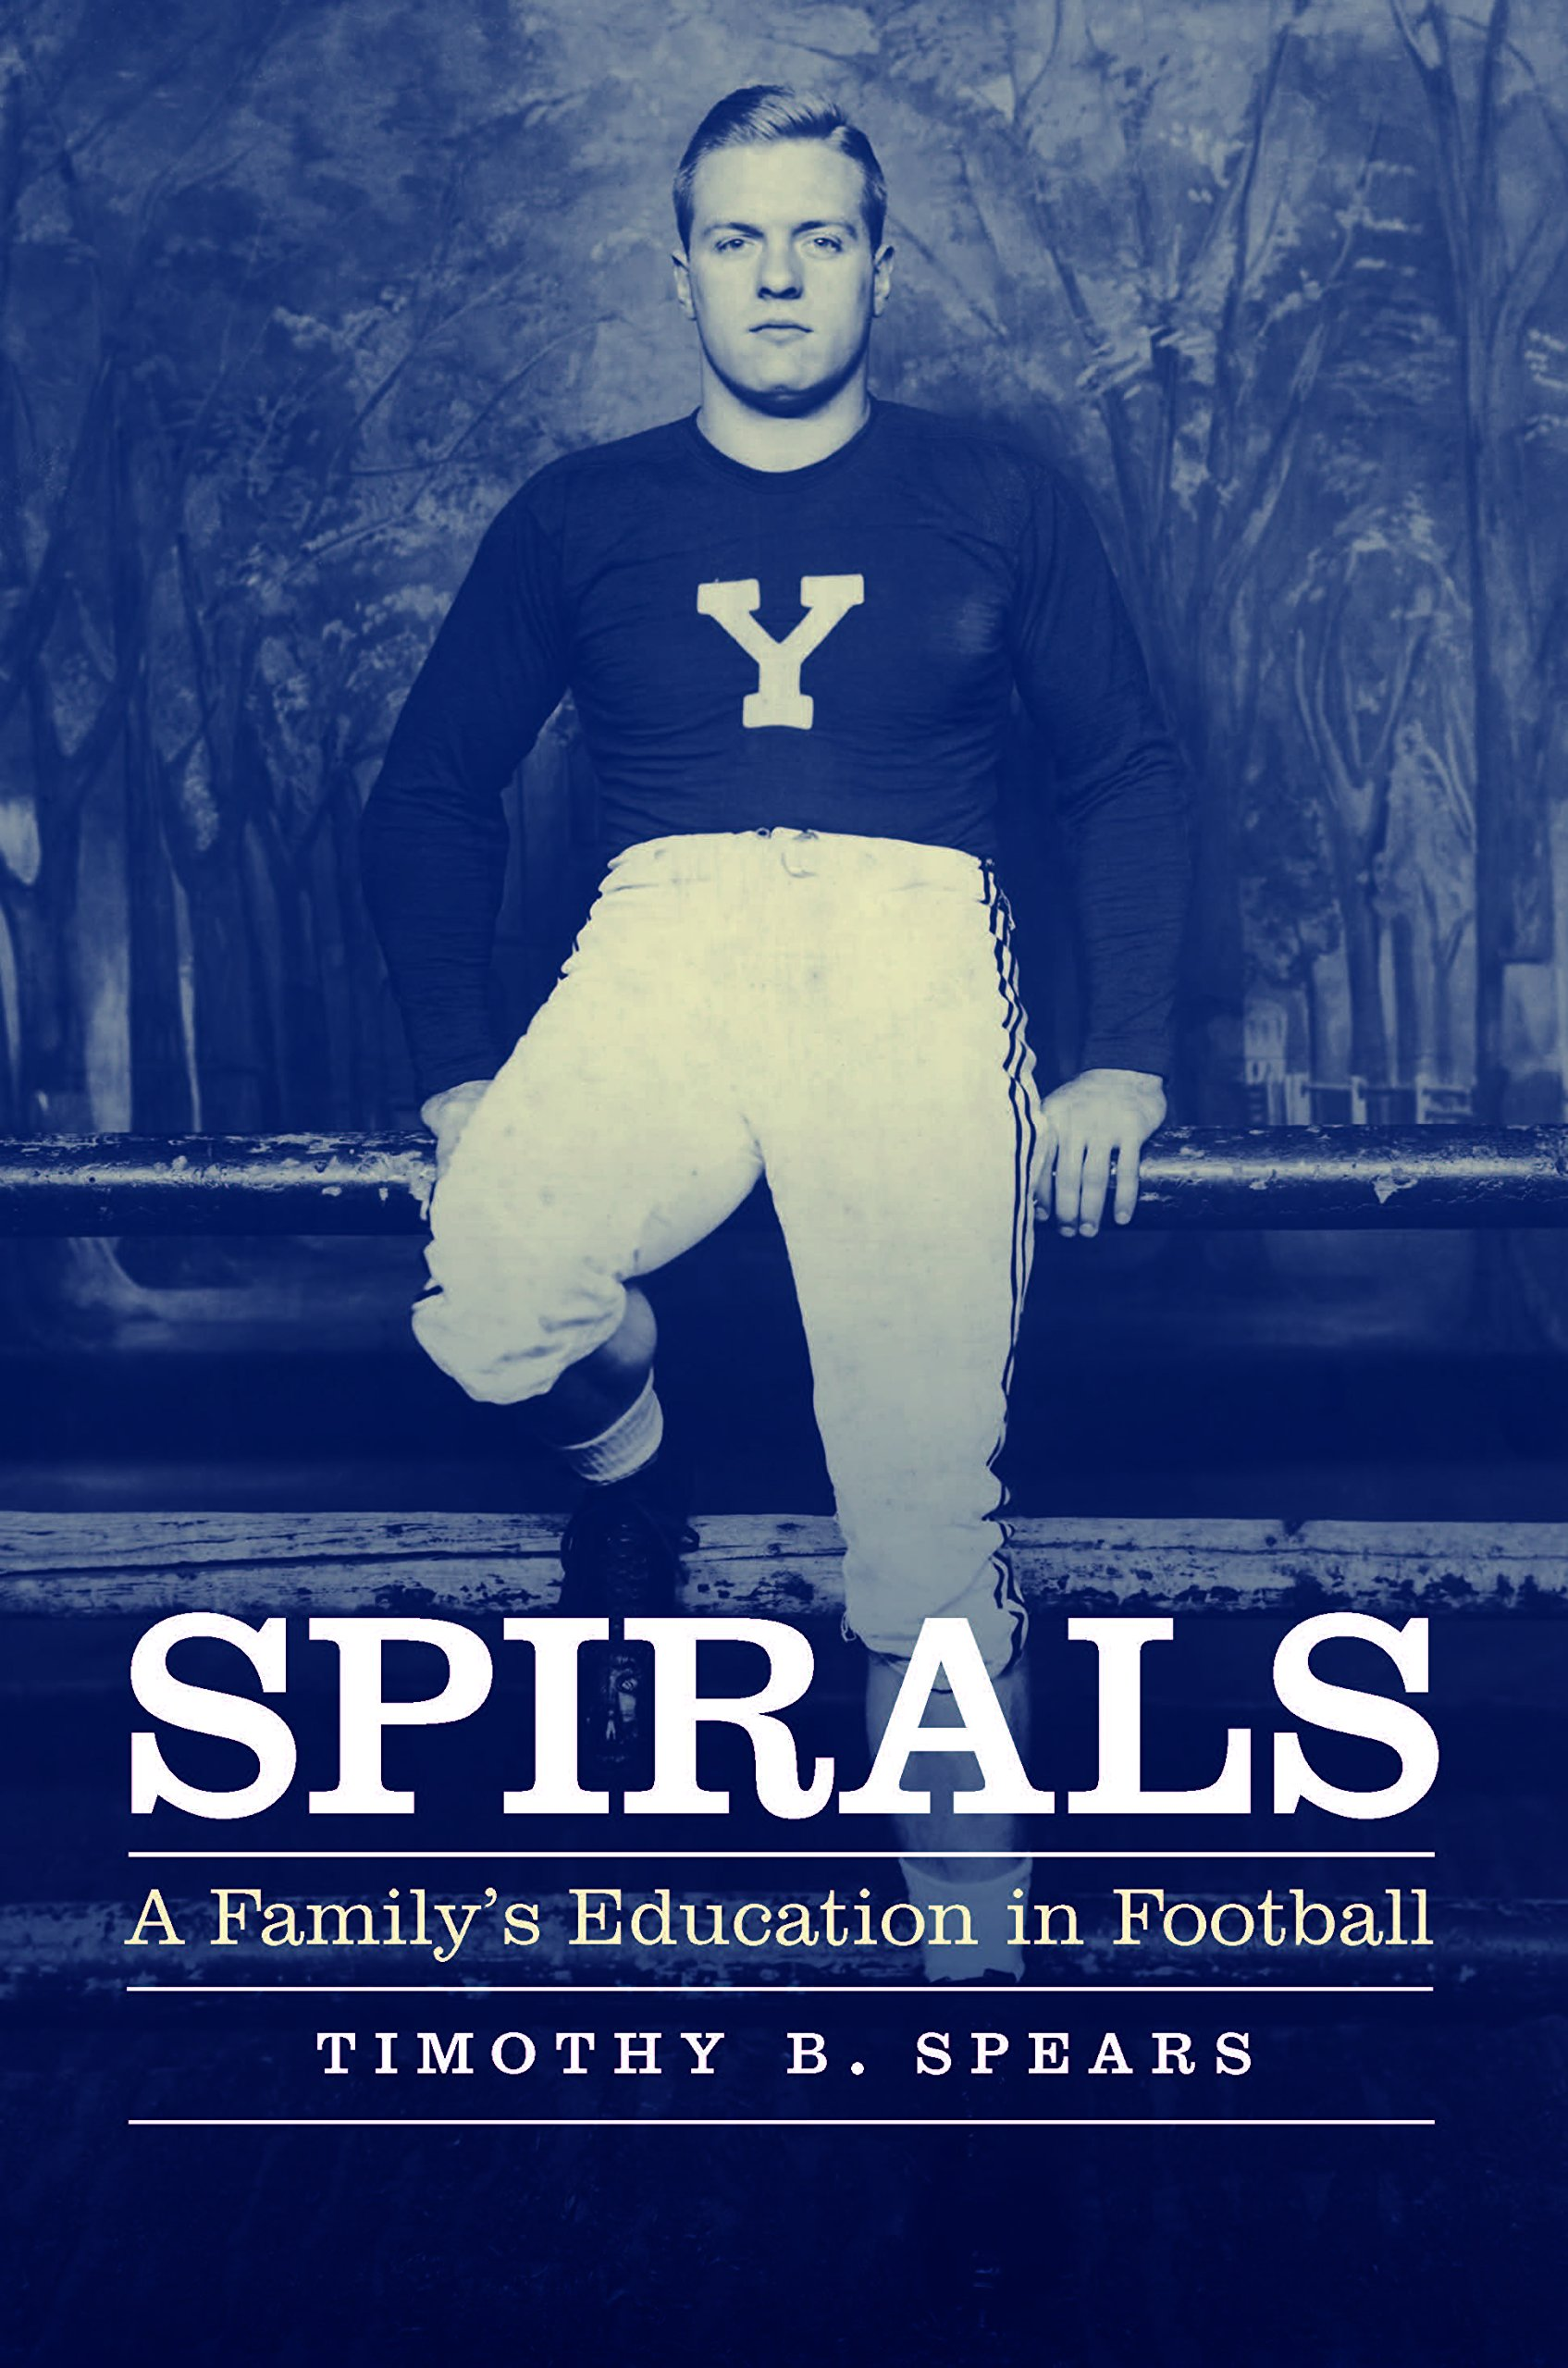 Amazon.com: Spirals: A Family's Education in Football (9781496203632):  Timothy Spears: Books